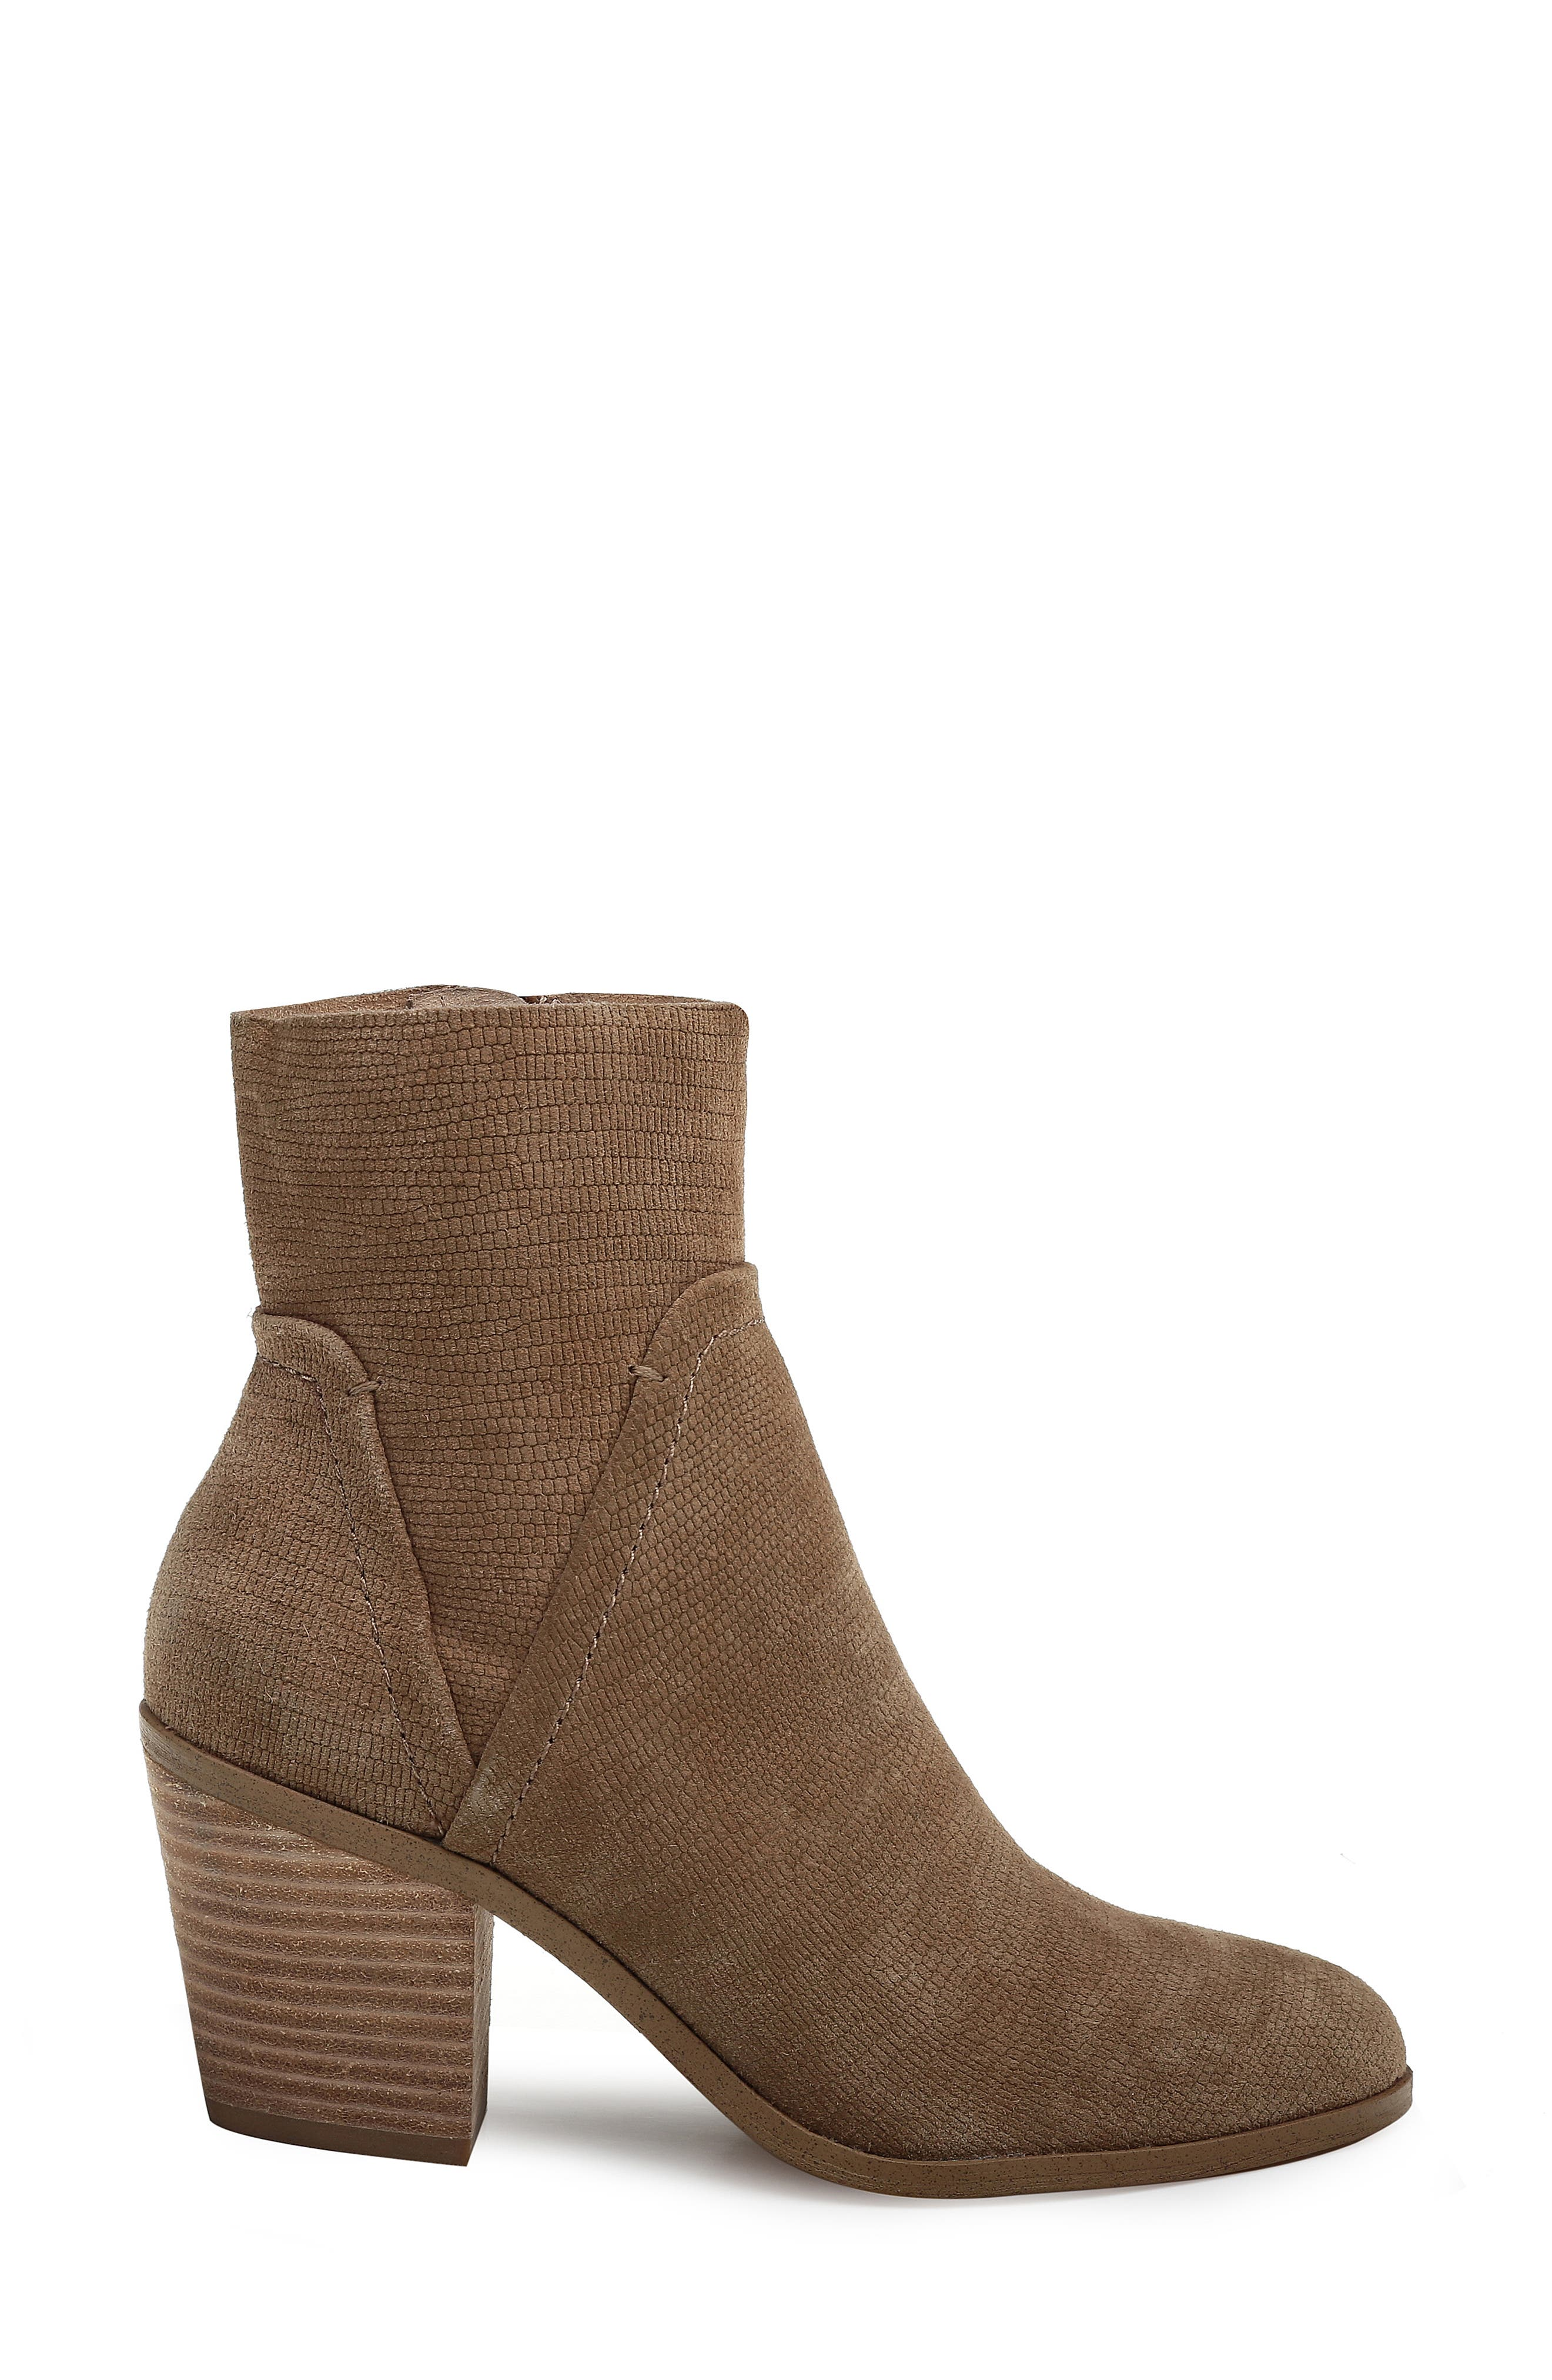 Cherie Bootie,                             Alternate thumbnail 3, color,                             OAT EMBOSSED SUEDE